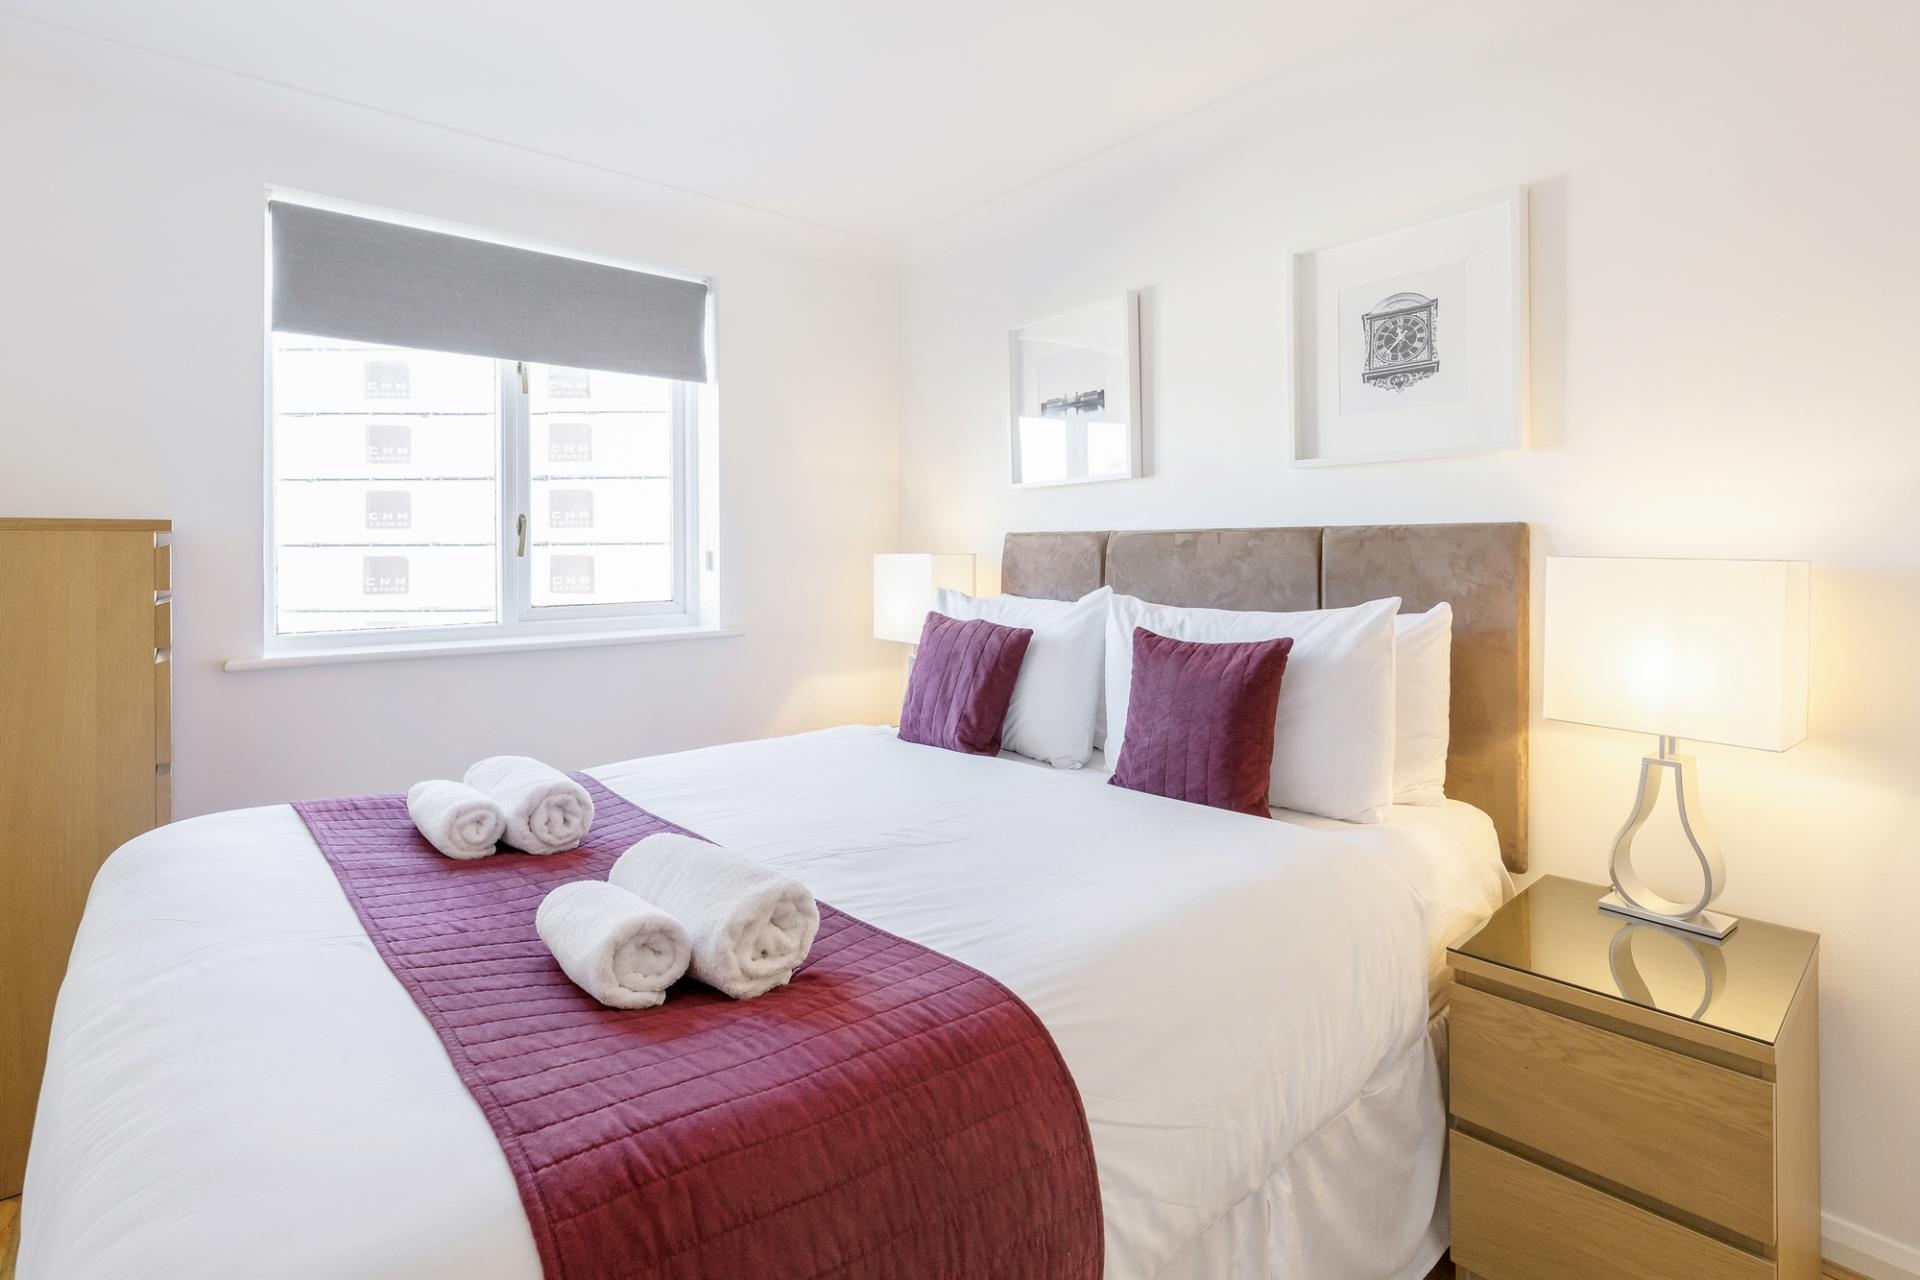 Bedroom at Regents Court, Kingston upon Thames, London - Citybase Apartments